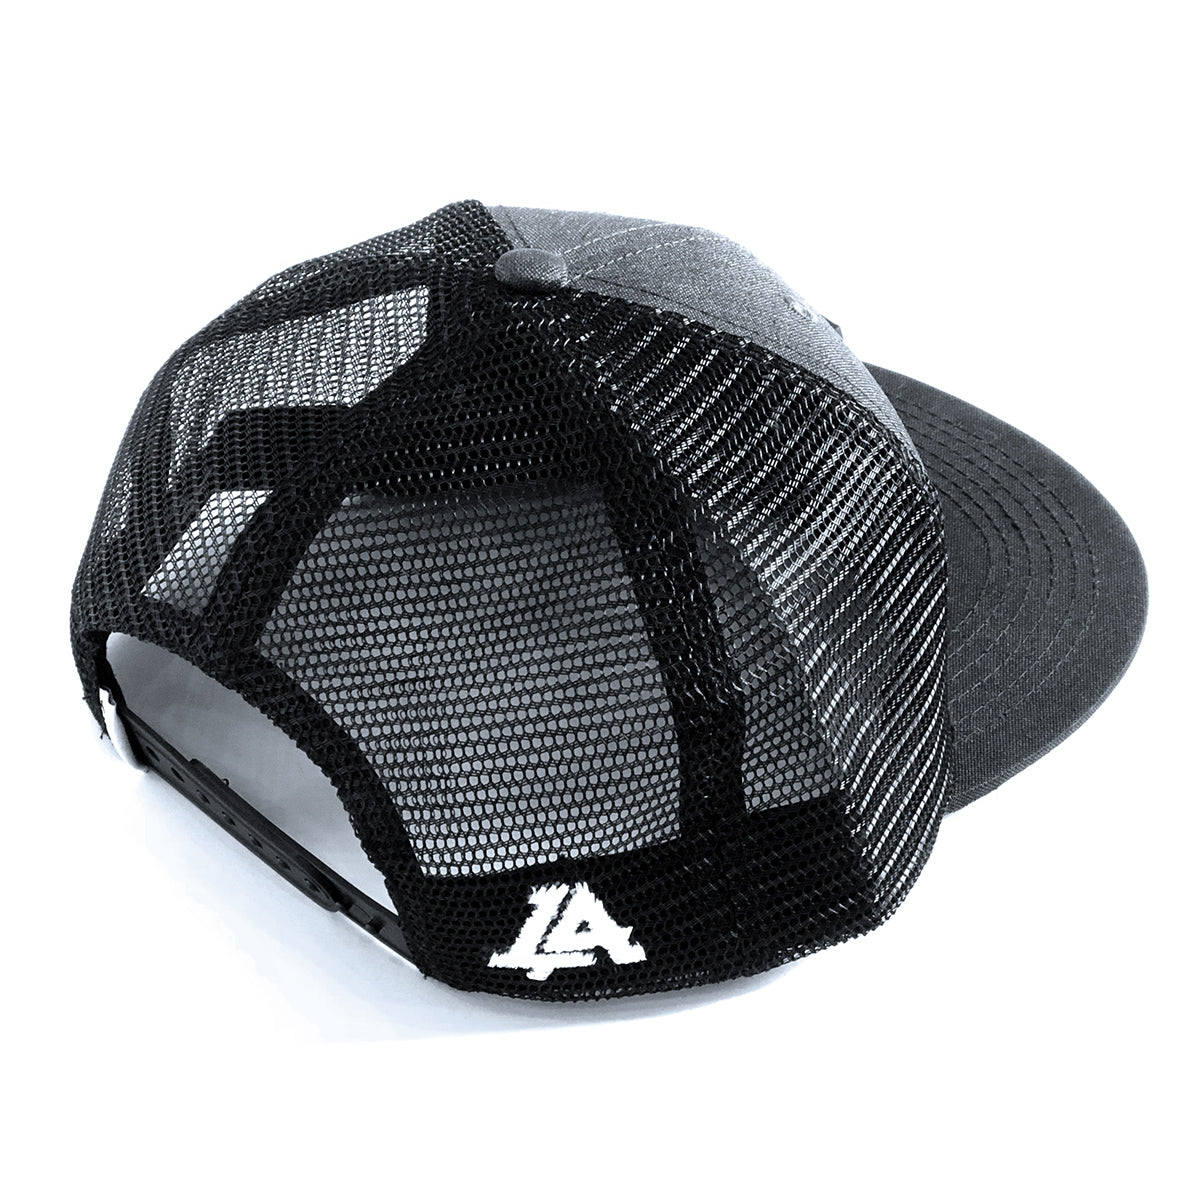 Lost Art Canada - grey and black patch snapback hat back view